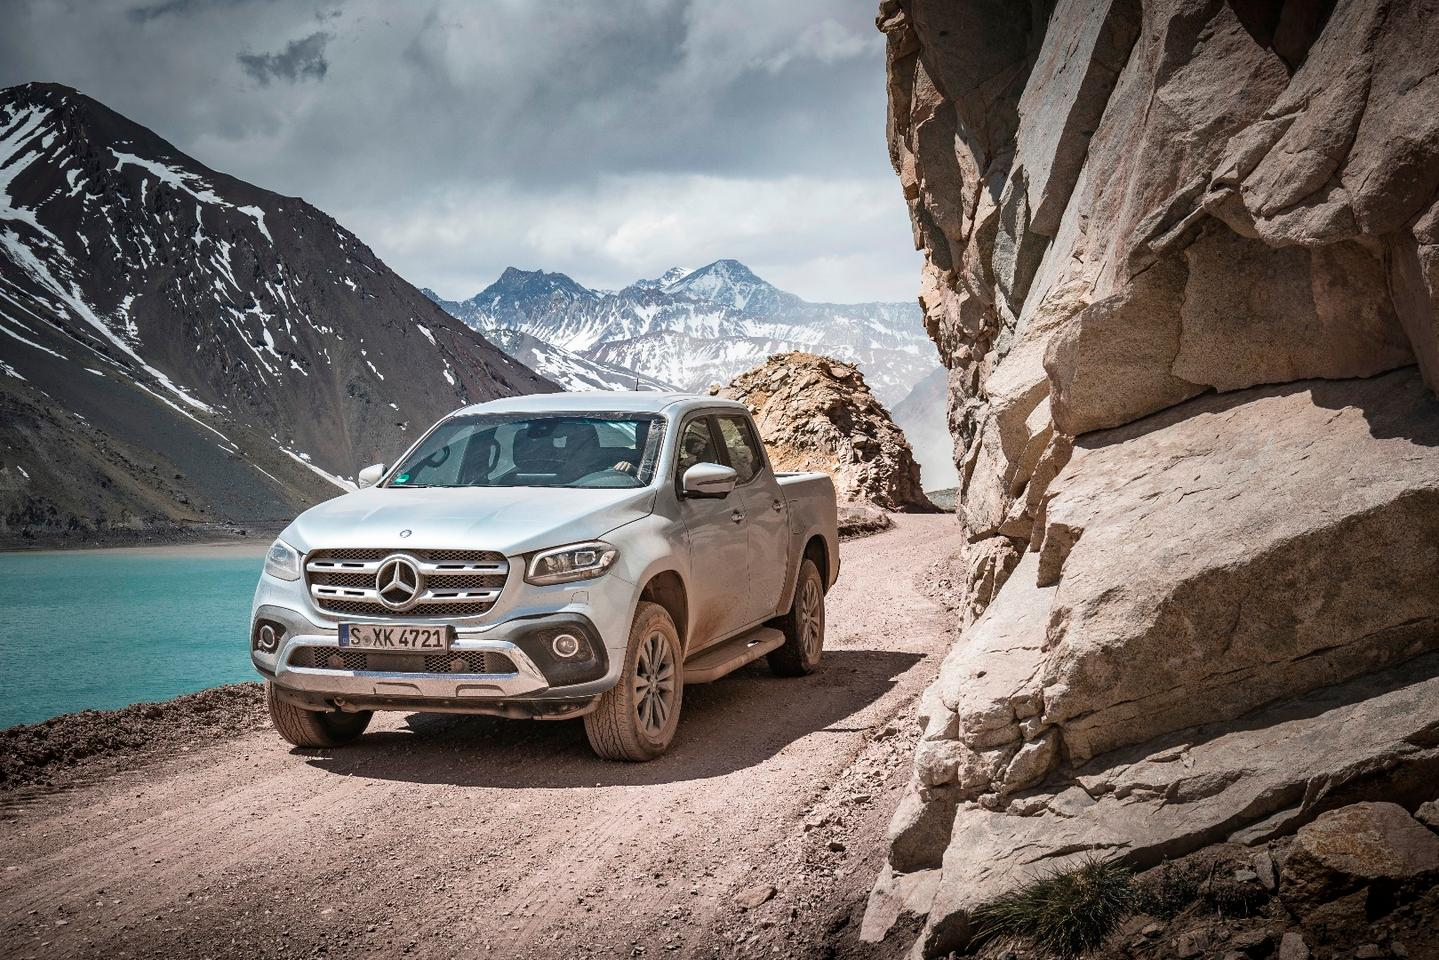 Mercedes transforms the X-Class pickup into an off-road